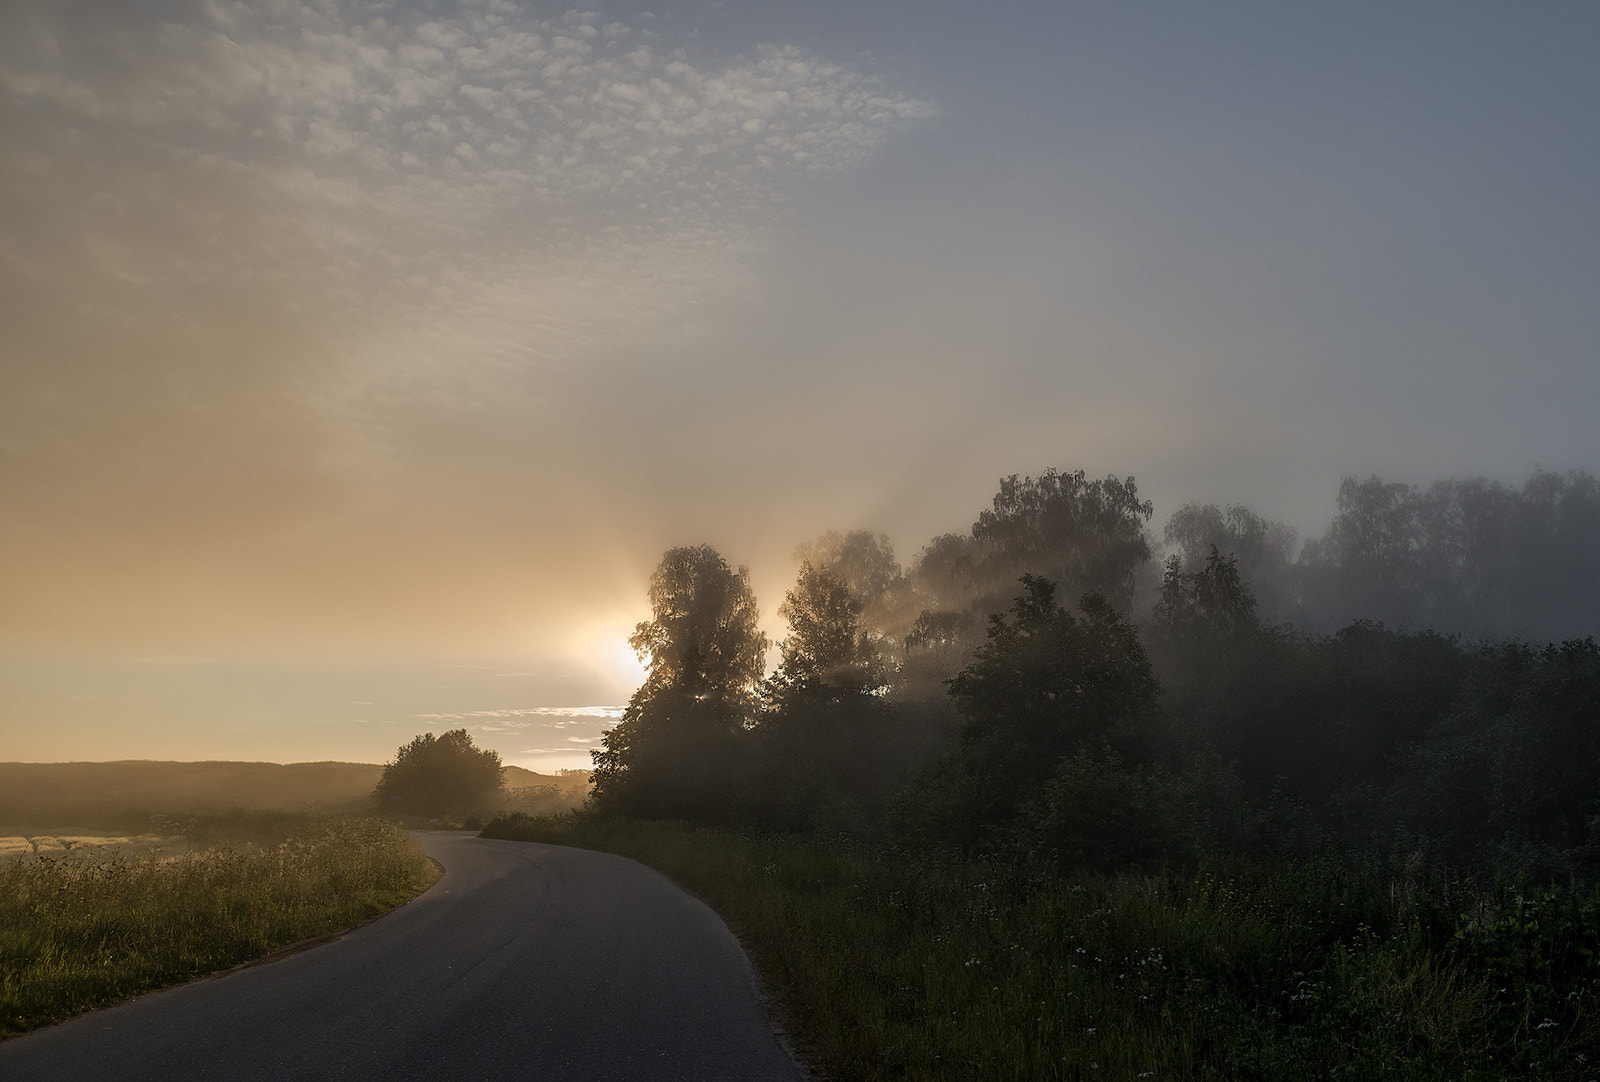 Photograph The morning mist. by Владимир Бесперстов on 500px